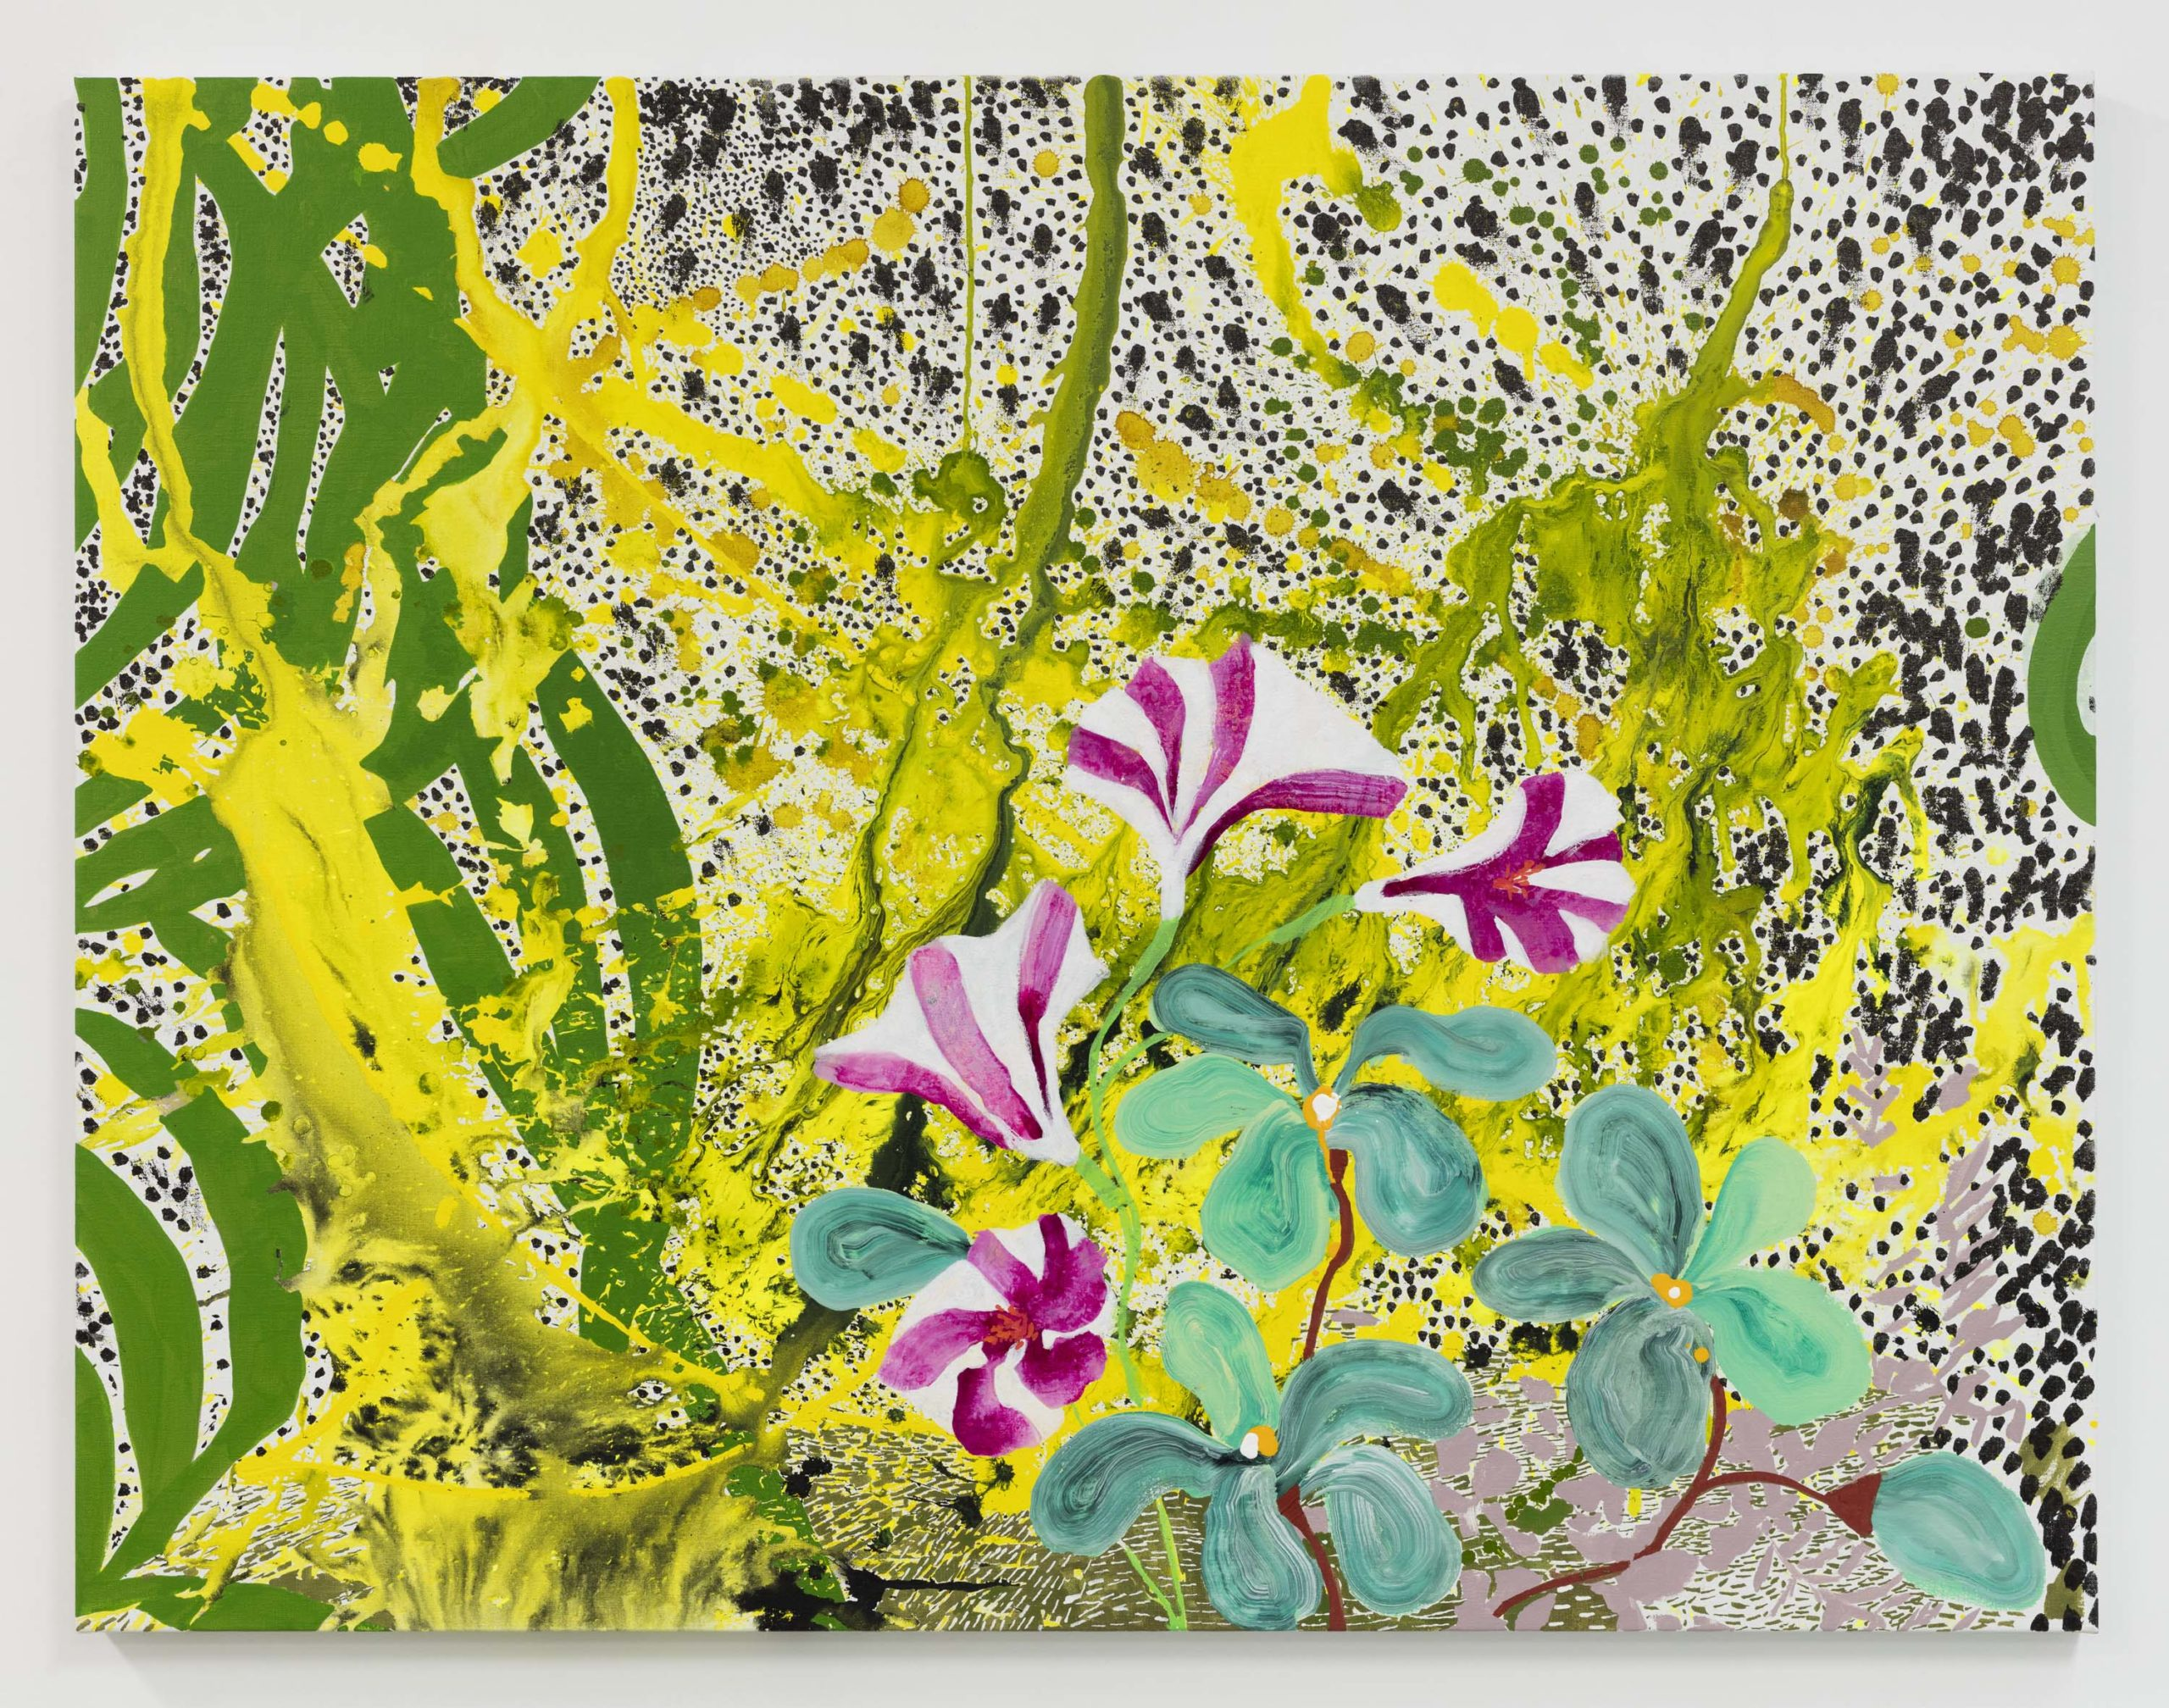 Elisabeth Condon's painting Trumpet Flower (2019) represents the pink and white flower on a background suggesting ferns and mottled stone like Oolite.